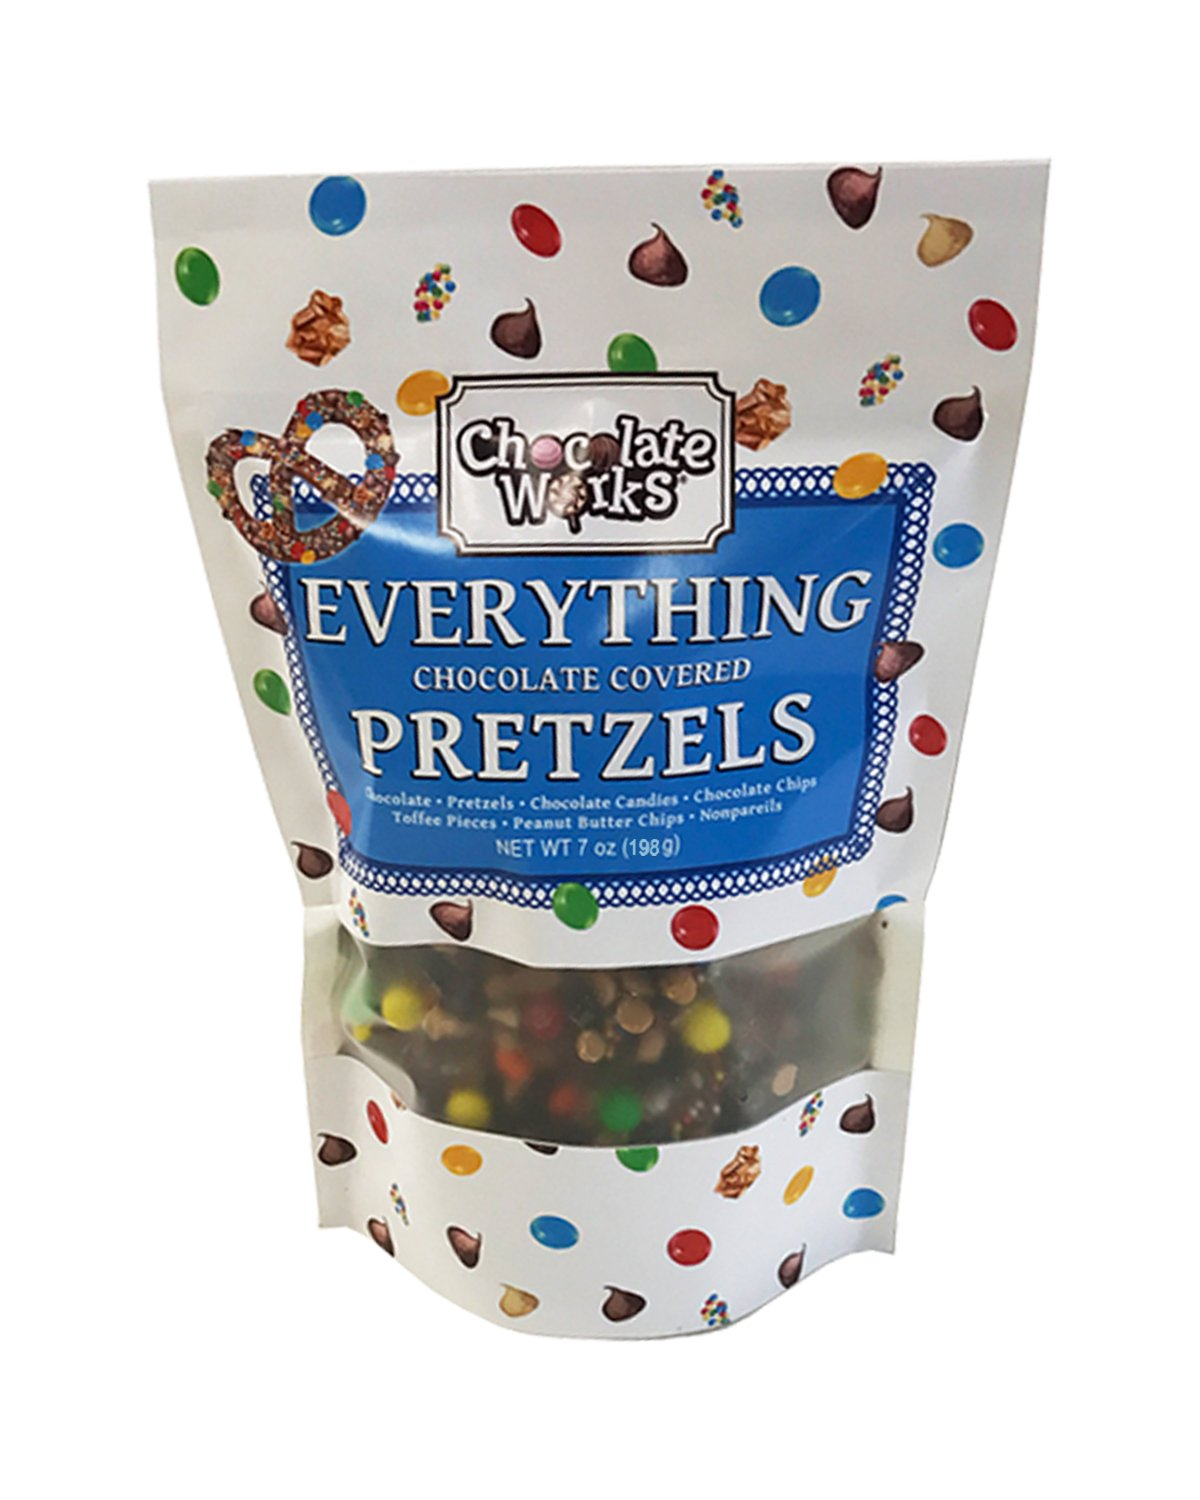 Everything Chocolate Covered Pretzels Pouches, 12 Pack by Chocolate Works